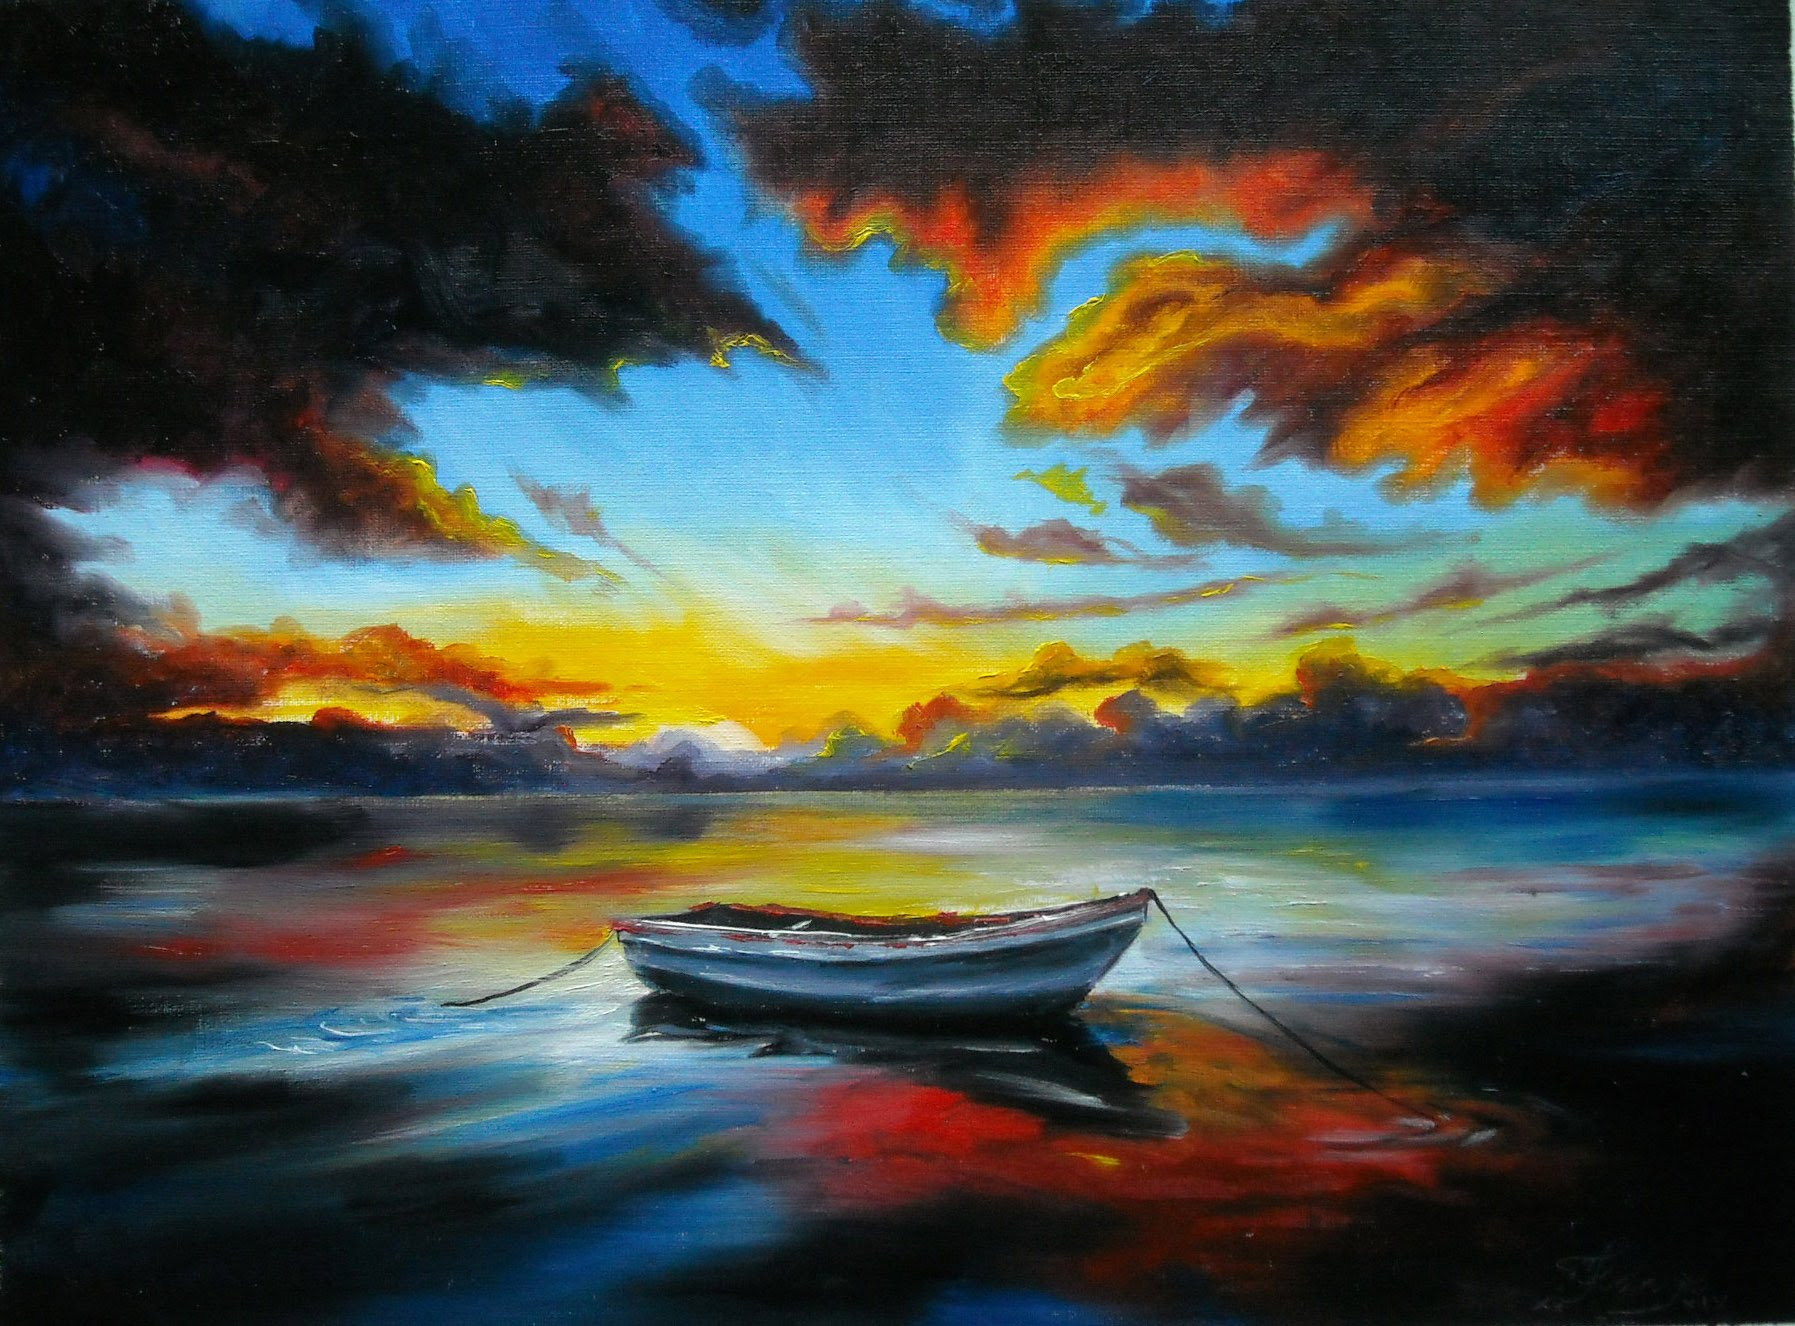 Oil Painting Images Download: Oil Paint Wallpapers High Quality